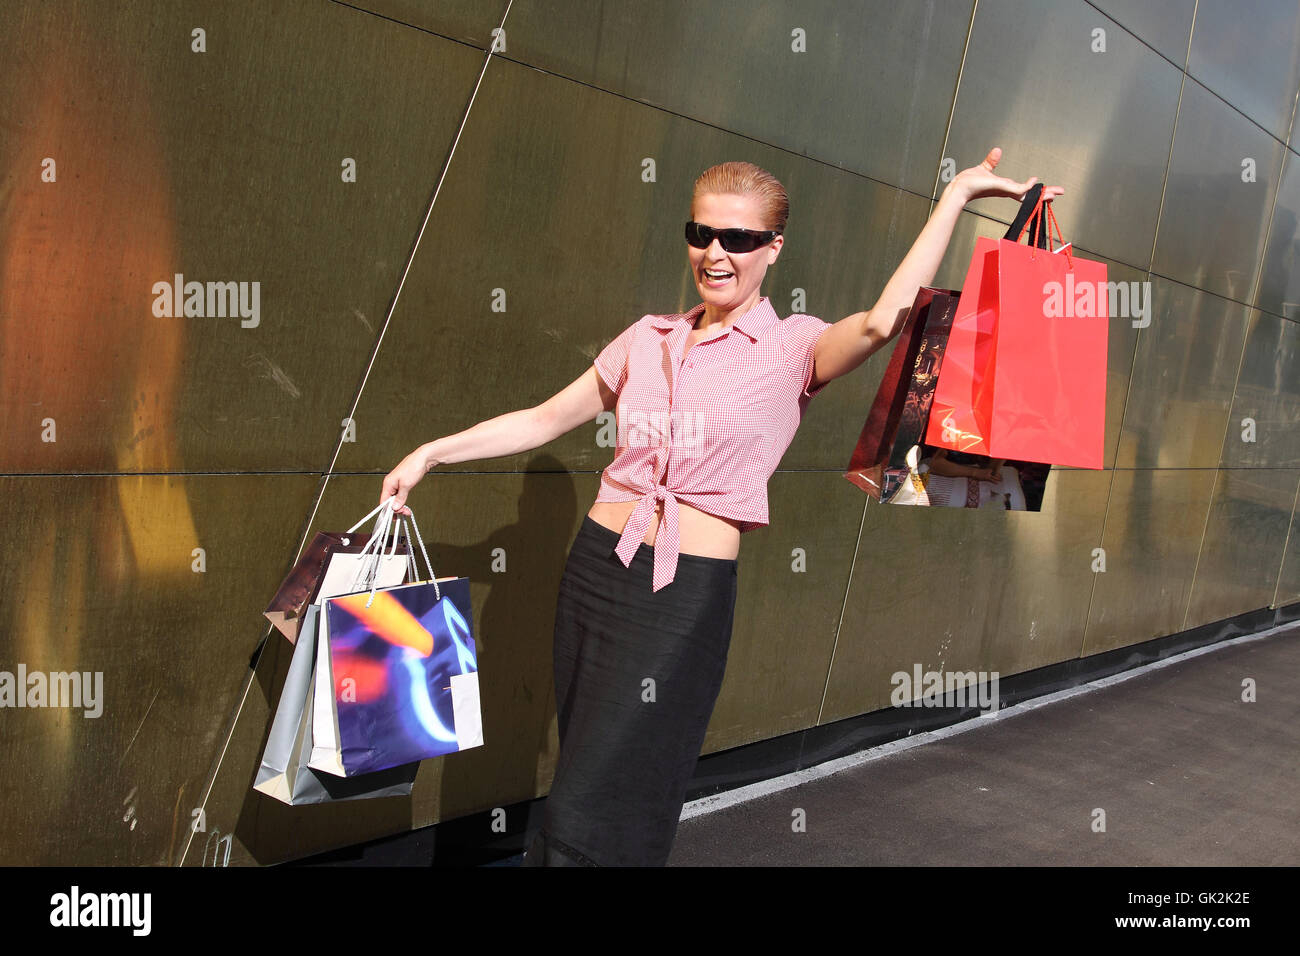 woman shopping communicate - Stock Image